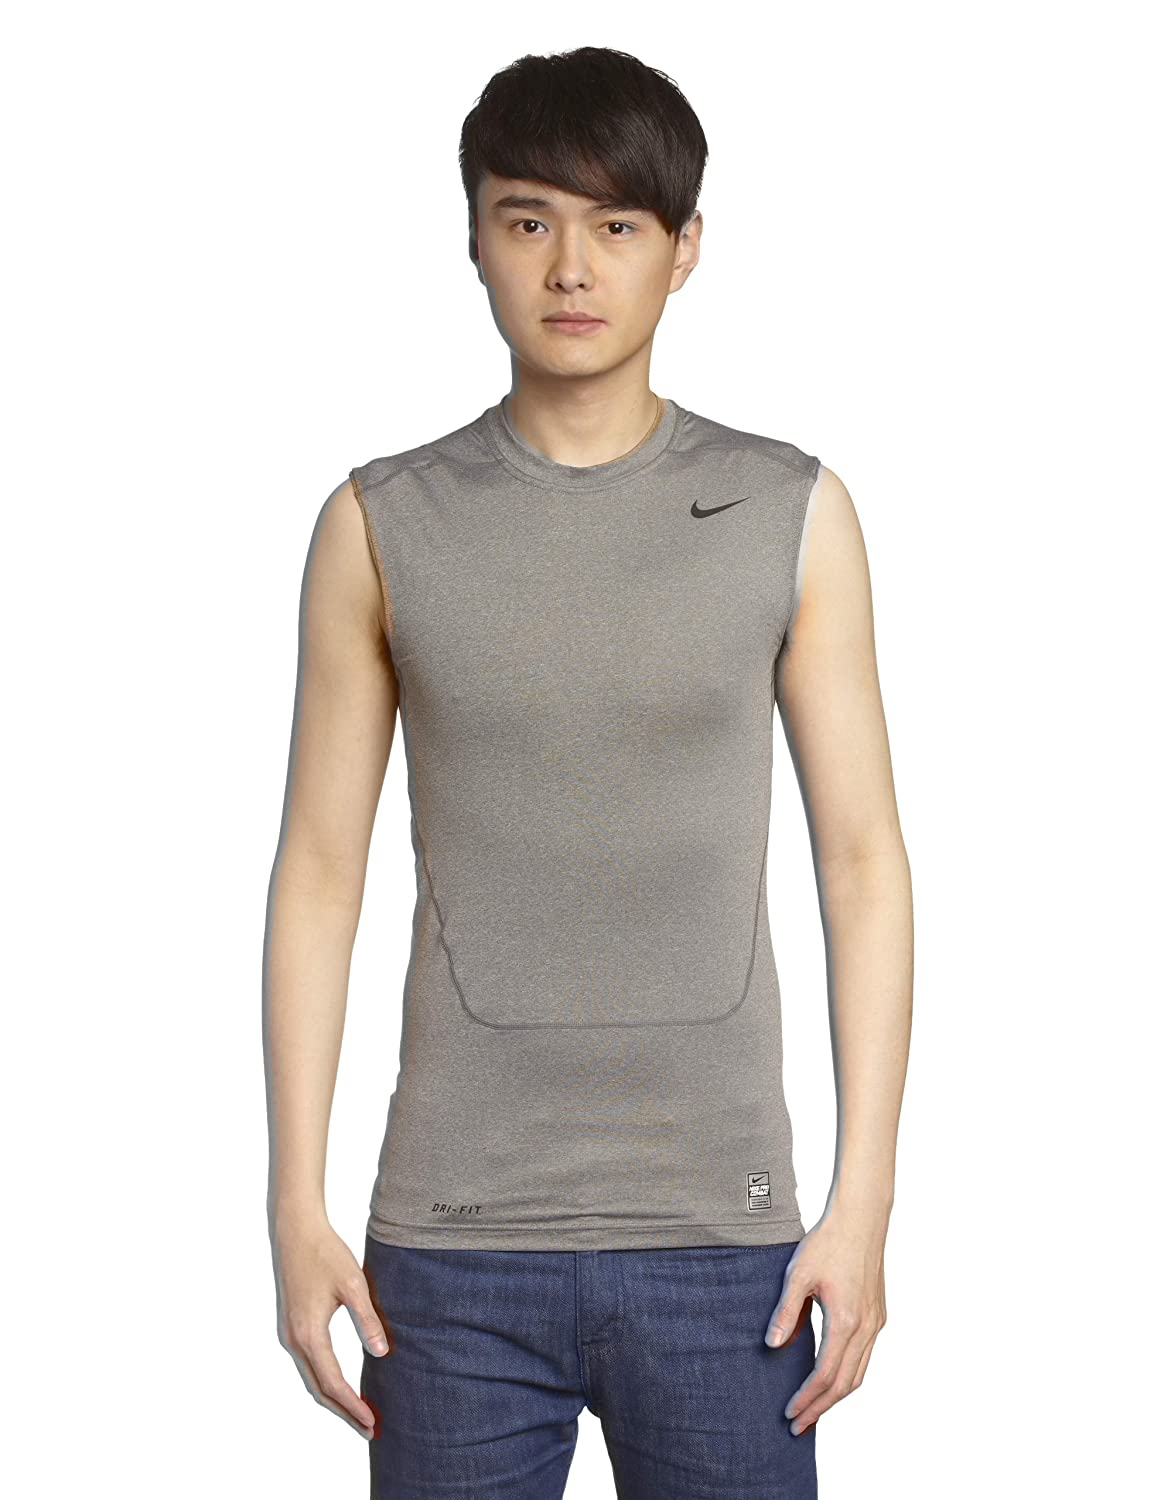 9bb48a07a8ae7a Nike Pro Sleeveless Compression Shirt – EDGE Engineering and ...